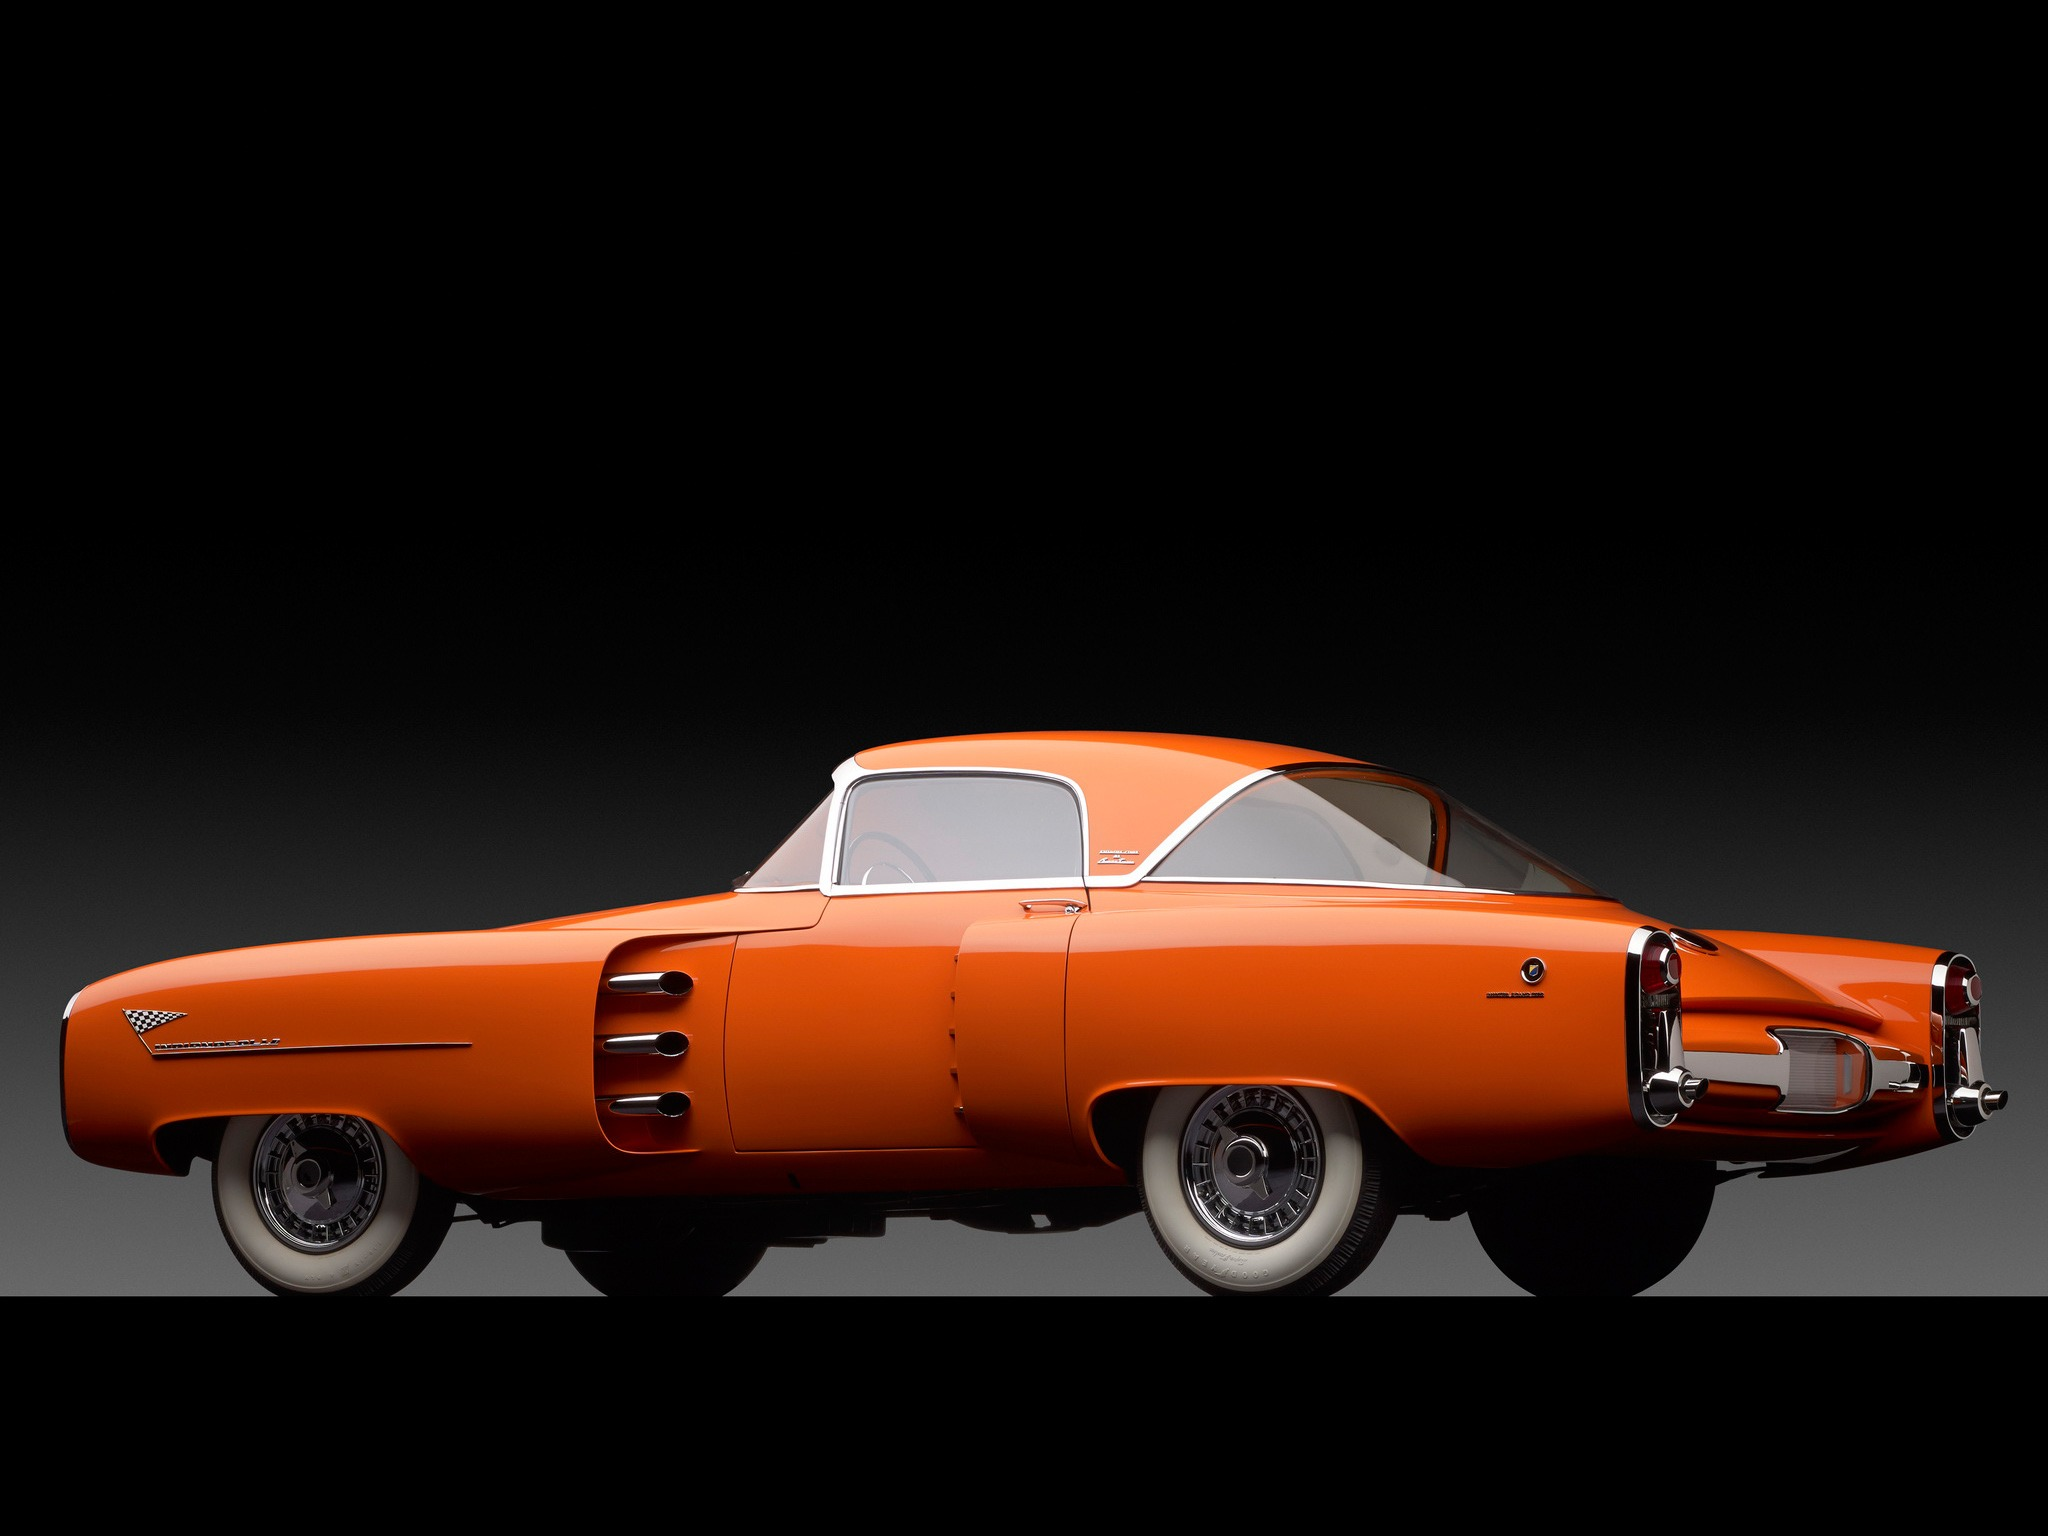 Lincoln Indianapolis Concept by Boano (1955) - Old Concept Cars